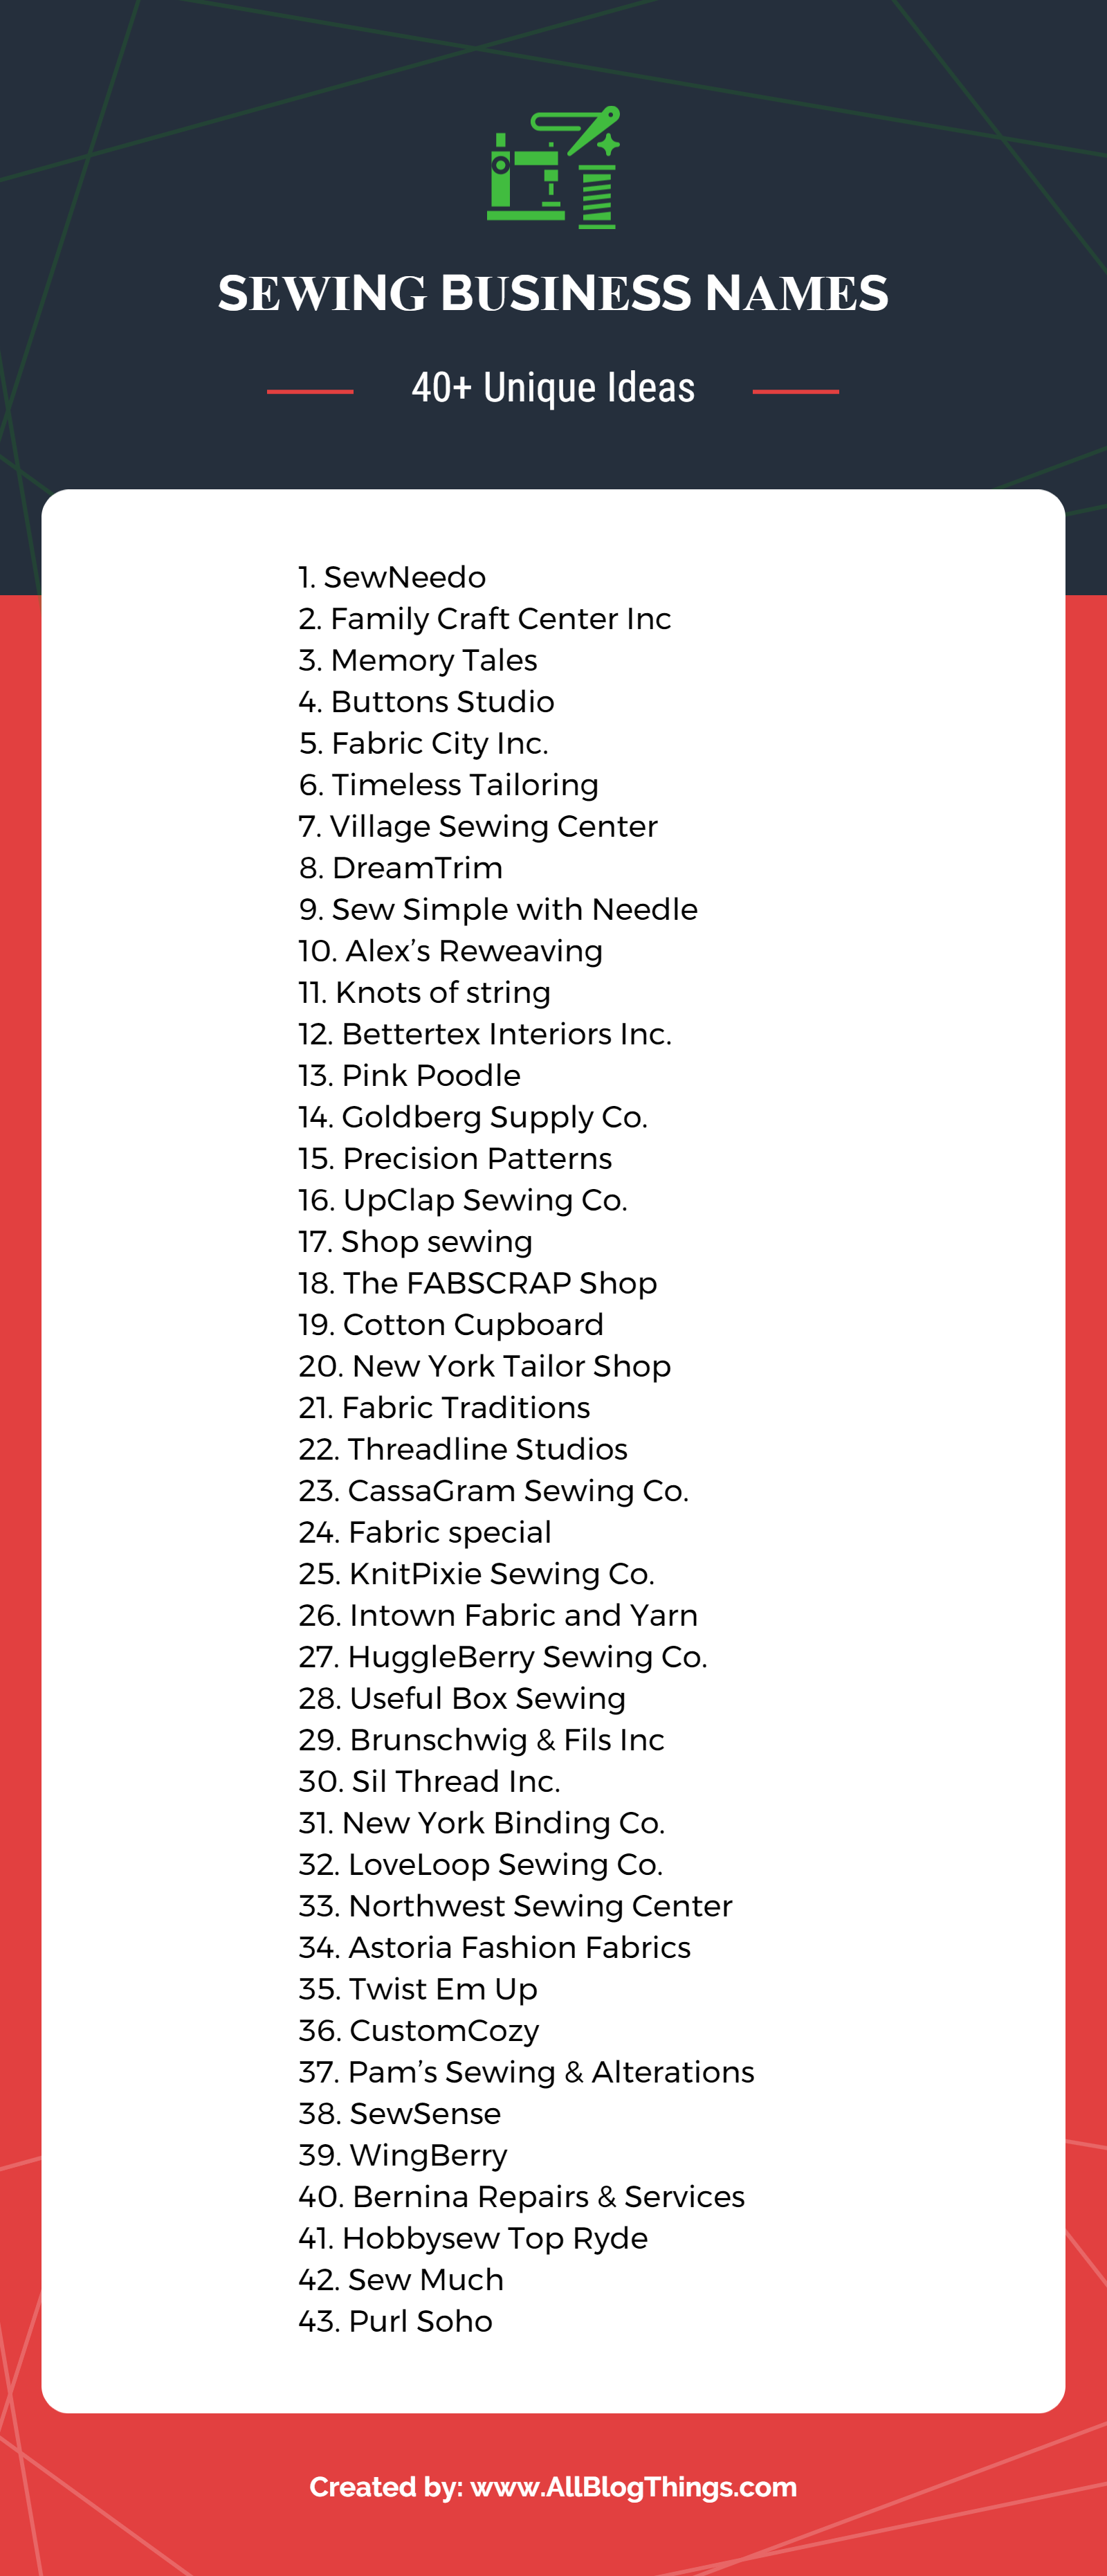 40+ Unique Sewing Company Names Infographic by AllBlogThings.com